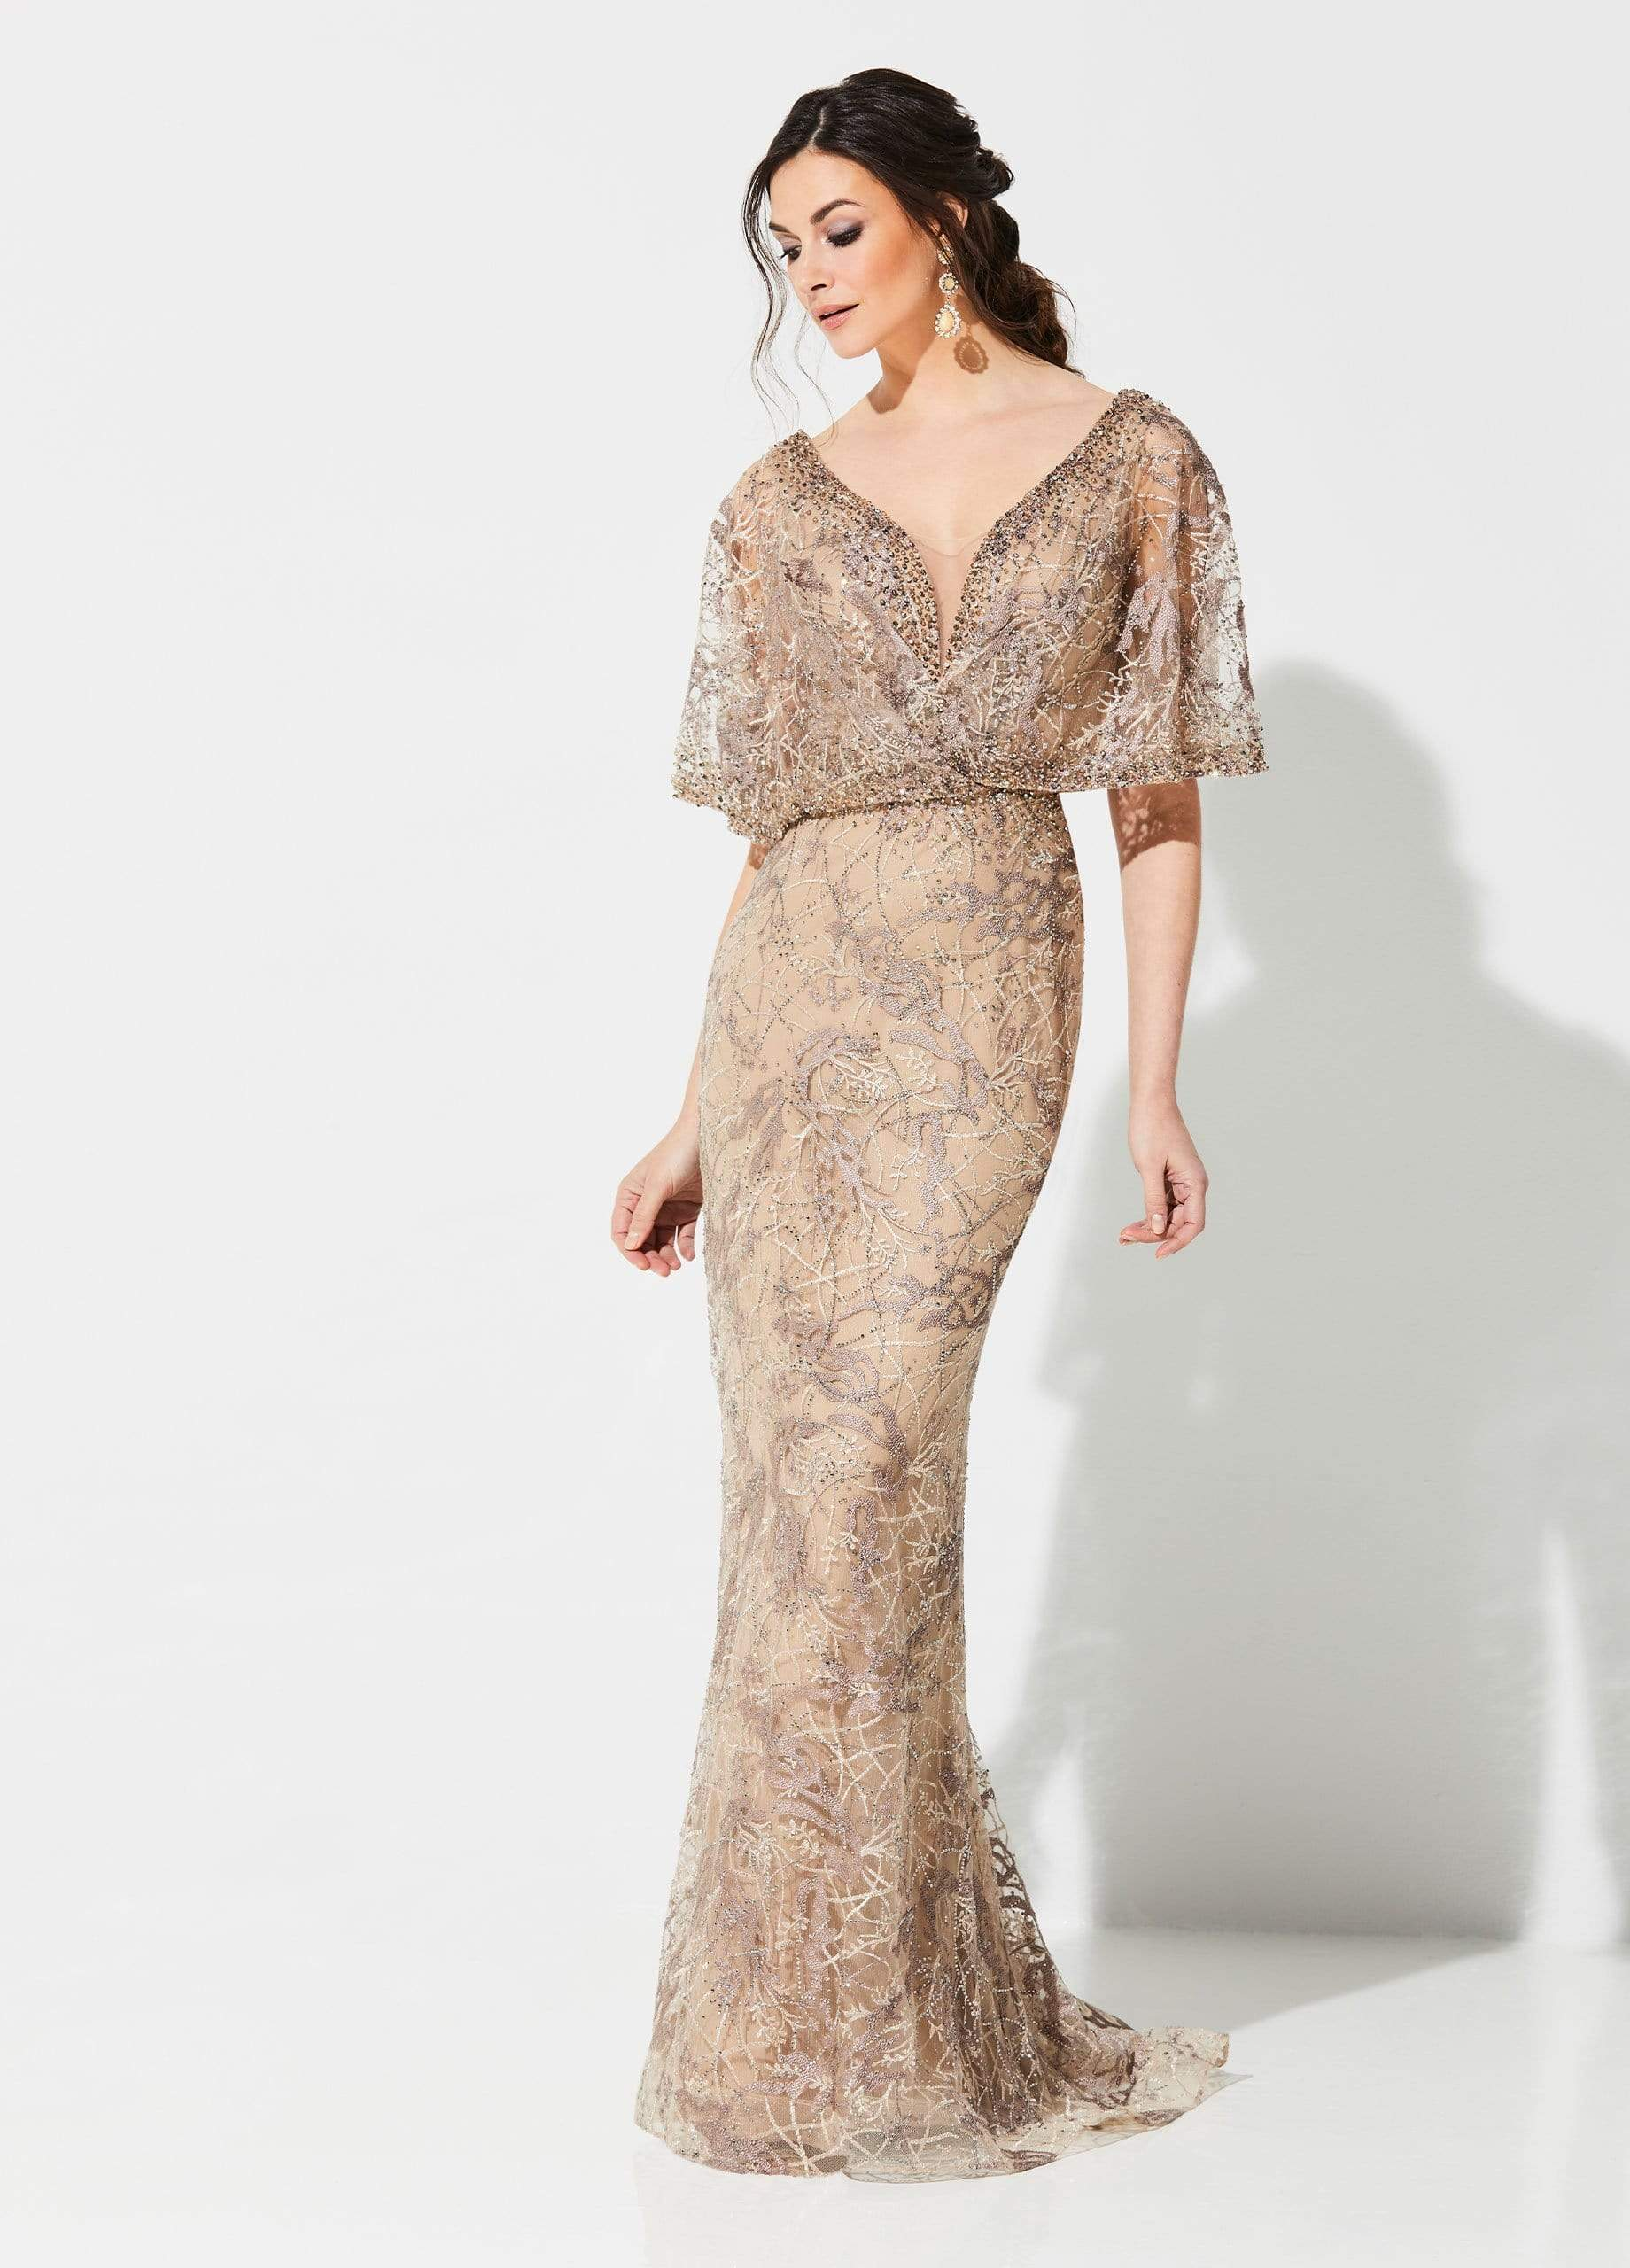 Ivonne D for Mon Cheri - 219D72 Embroidered Kimono Sleeve Lace Gown In Gold and Neutral